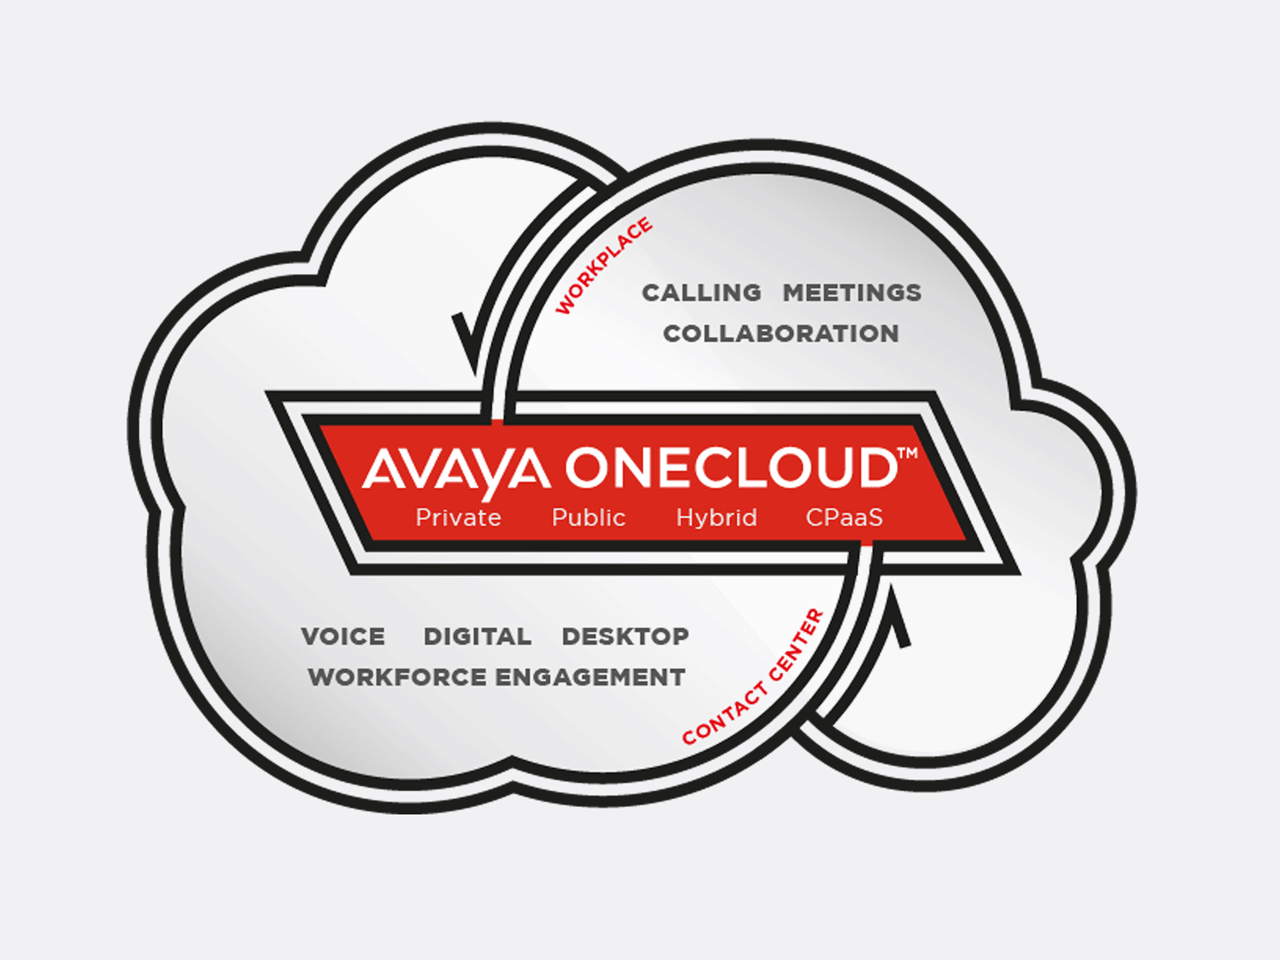 Avaya logo clipart picture library download Experience Avaya OneCloud for Business Communications | Avaya picture library download